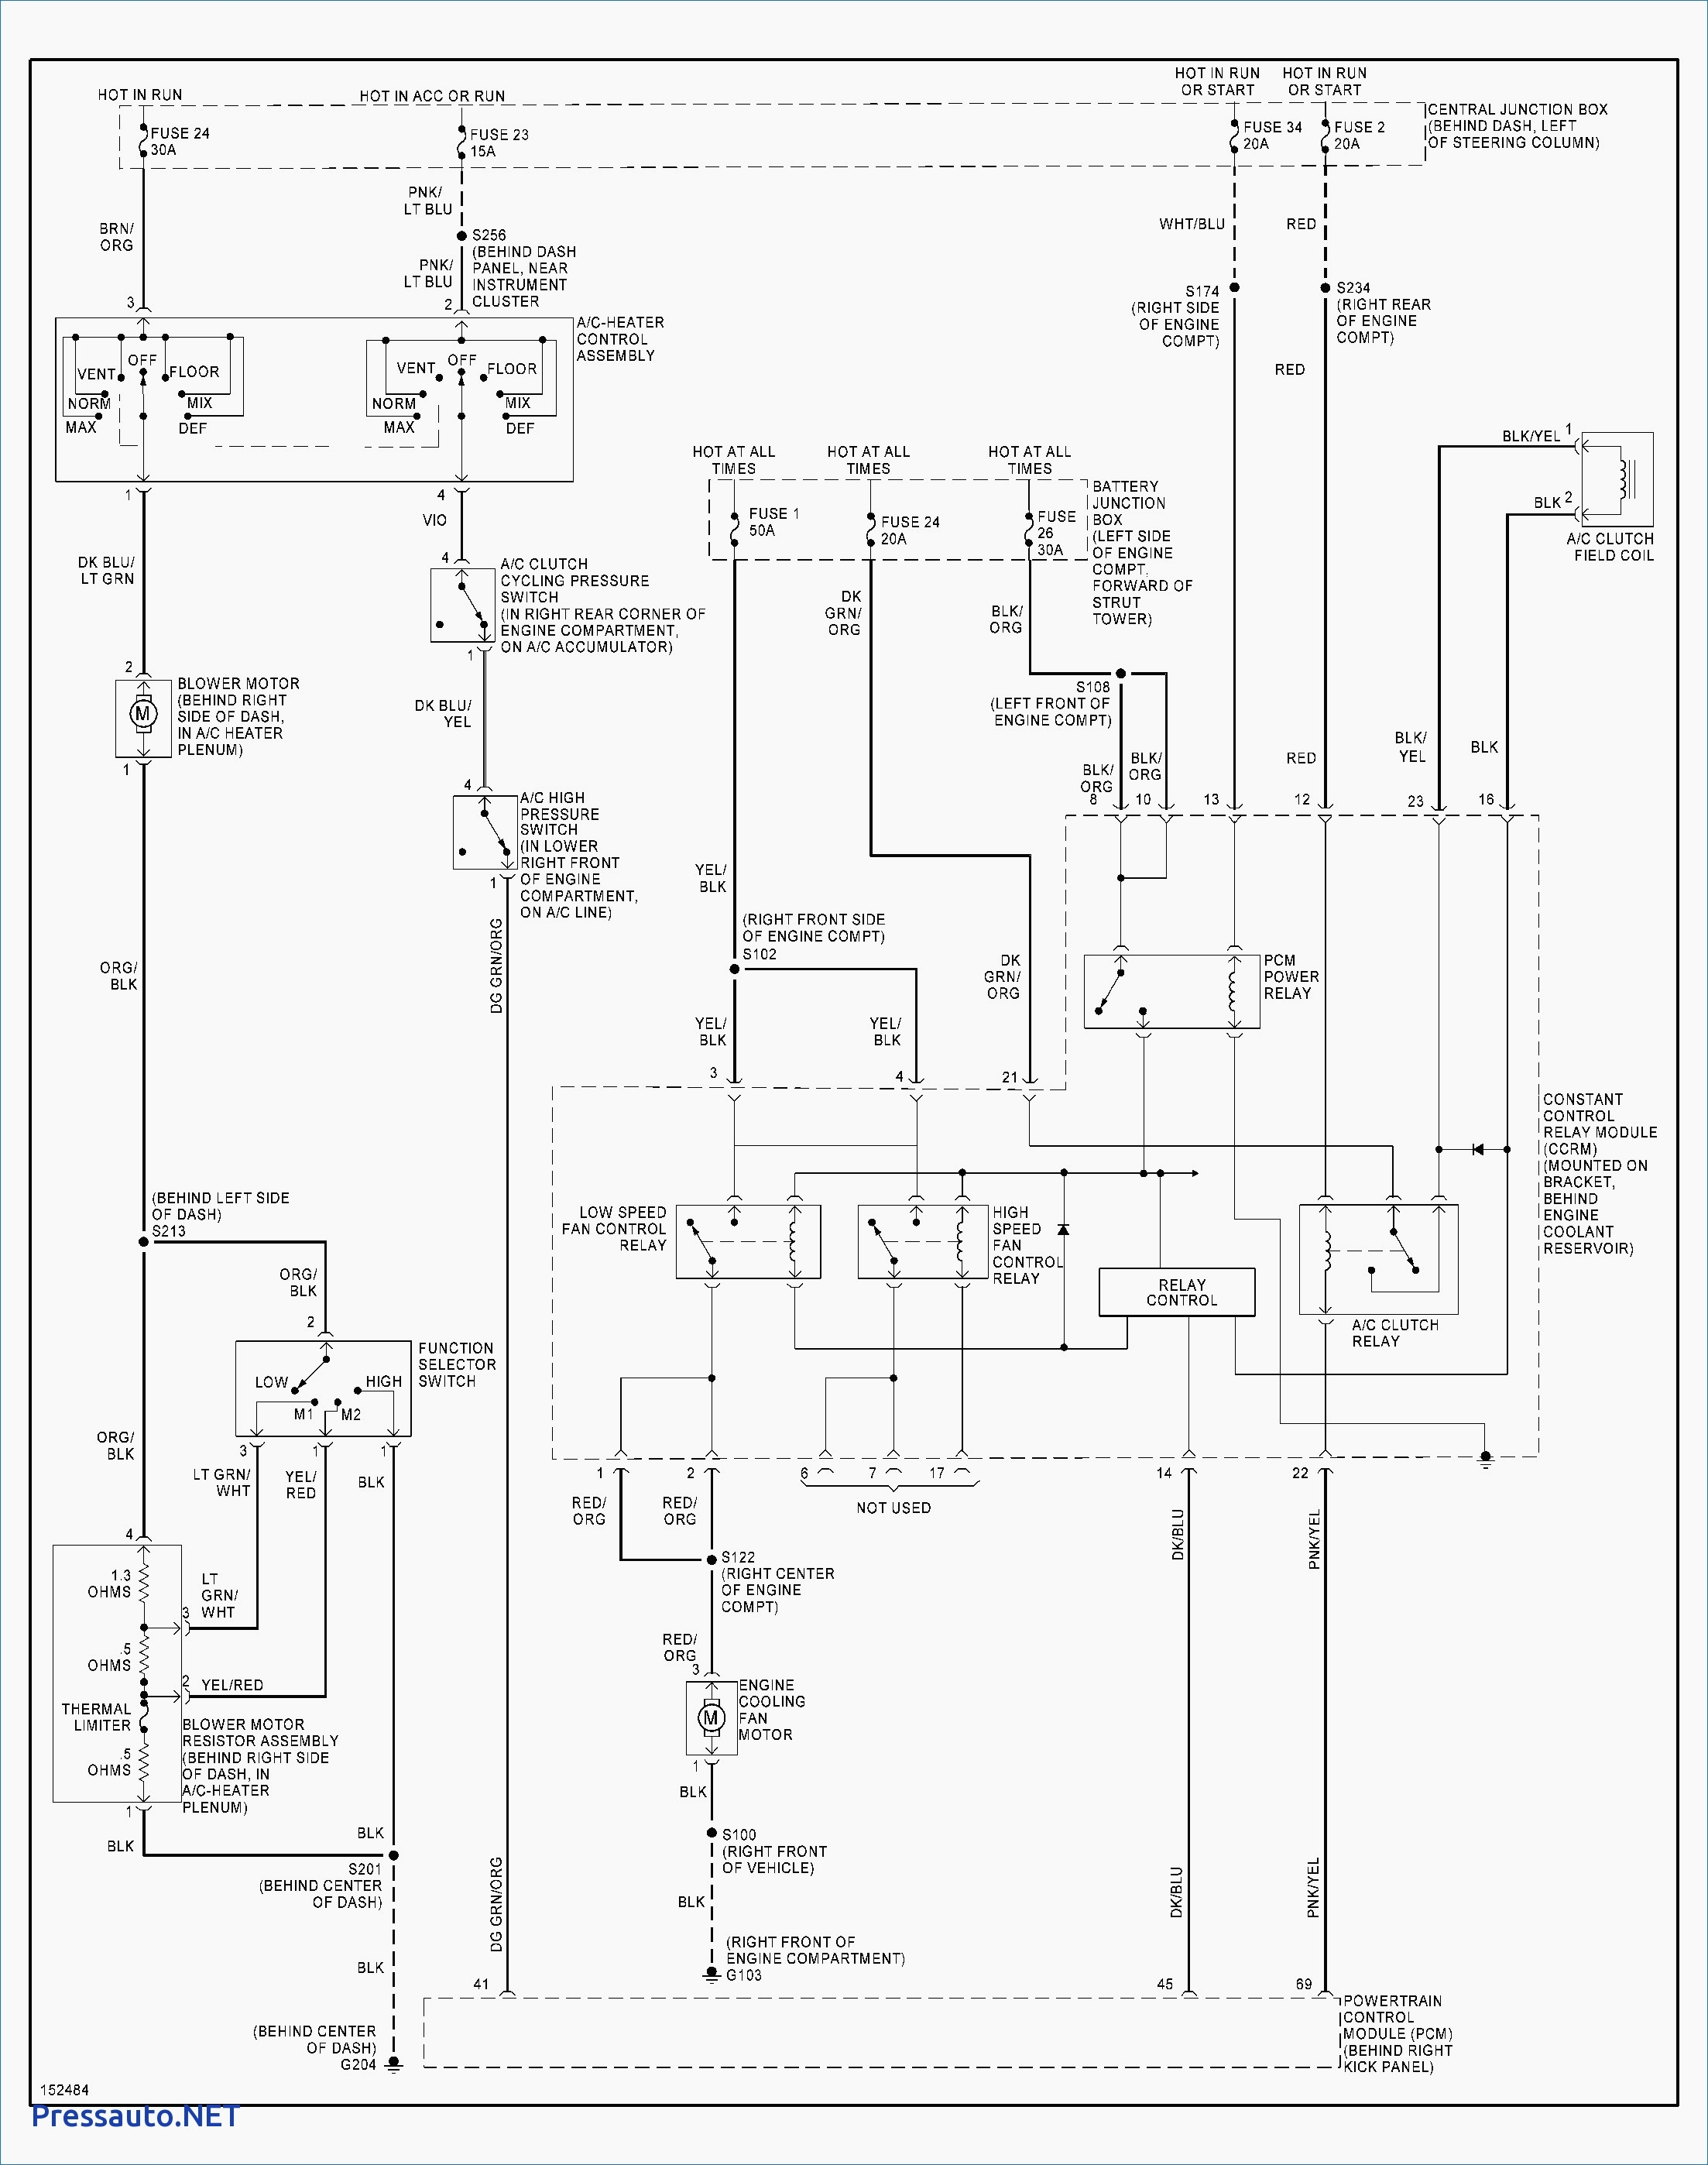 Diagram Newair G73 Electric Wiring Diagram Full Version